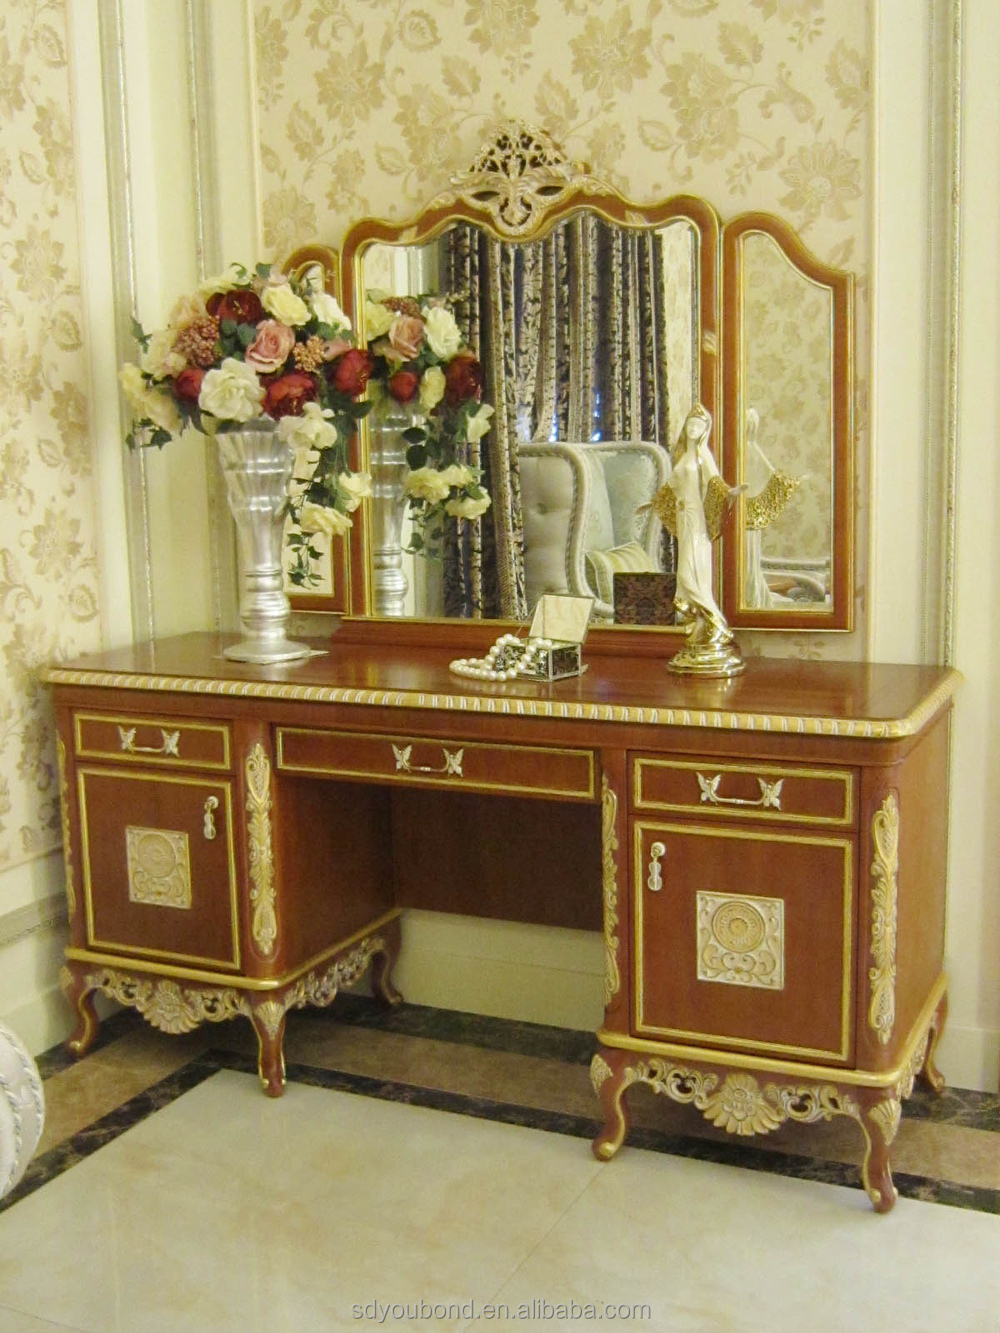 0050 american style home furniture dubai luxury hand made bedroom set furniture buy bedroom Marlin home furniture dubai